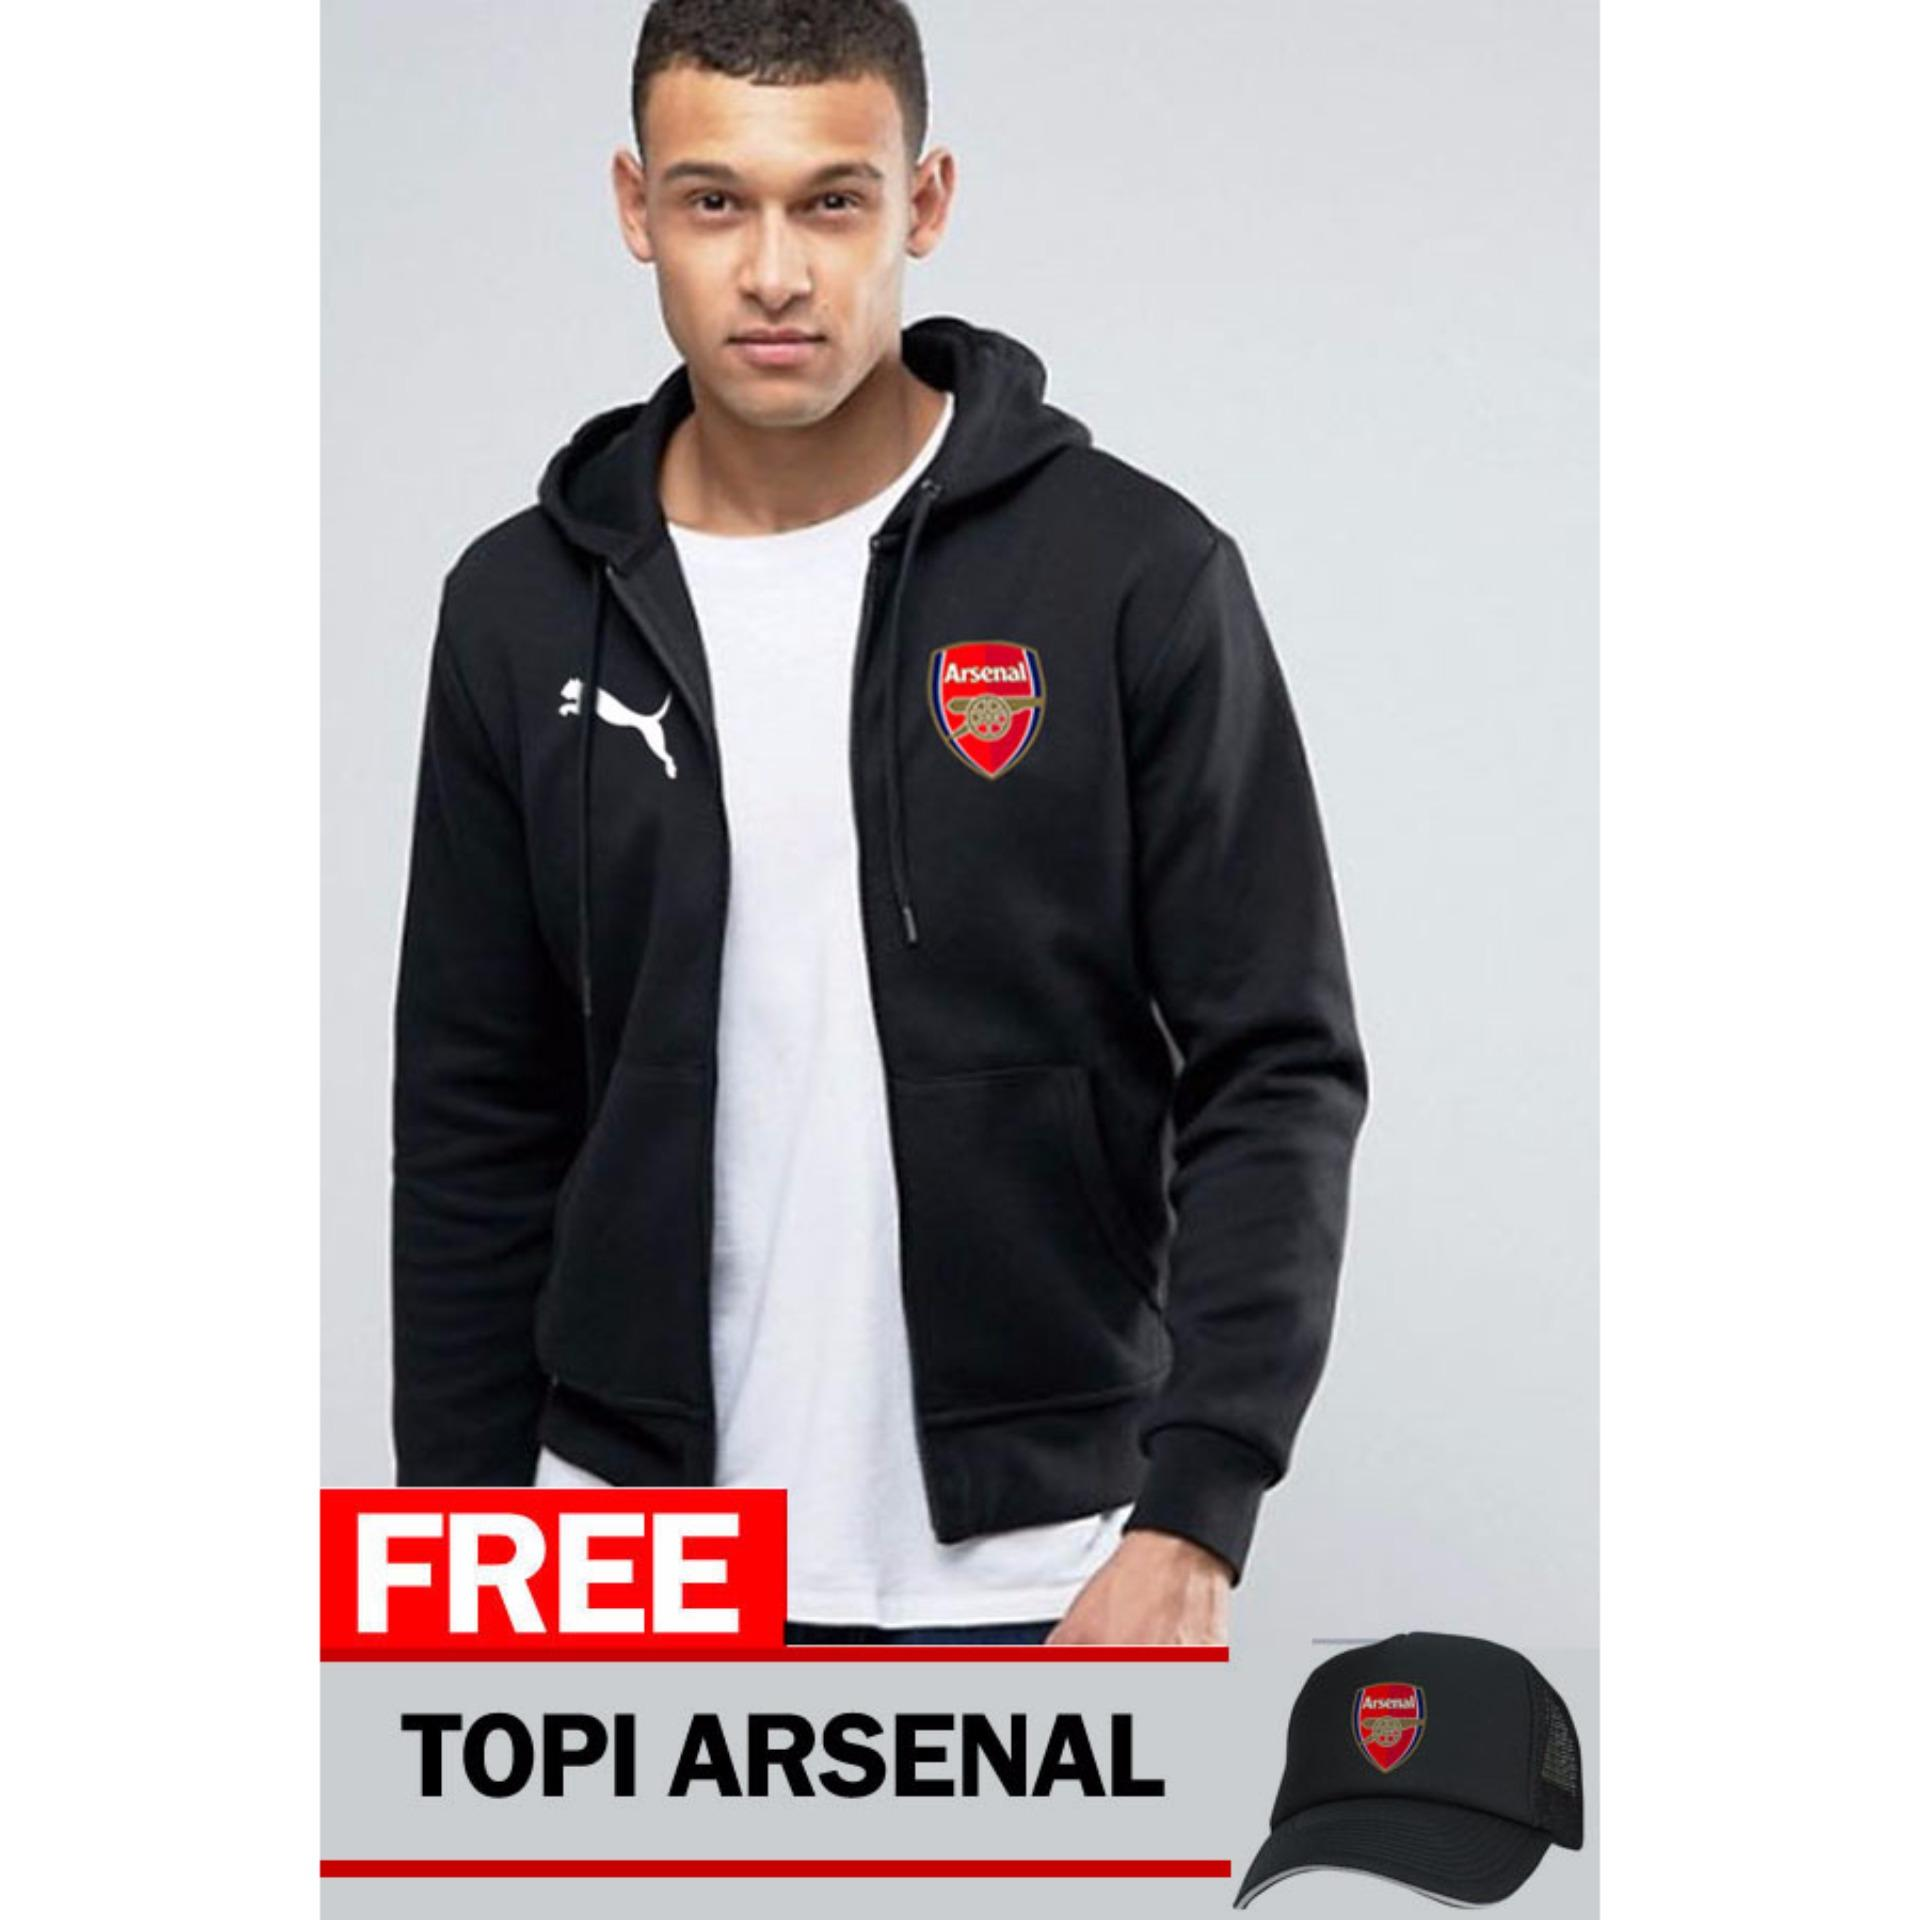 Beli Just Cloth Jaket Zipper Arsenal Free Topi Arsenal Hitam Lengkap